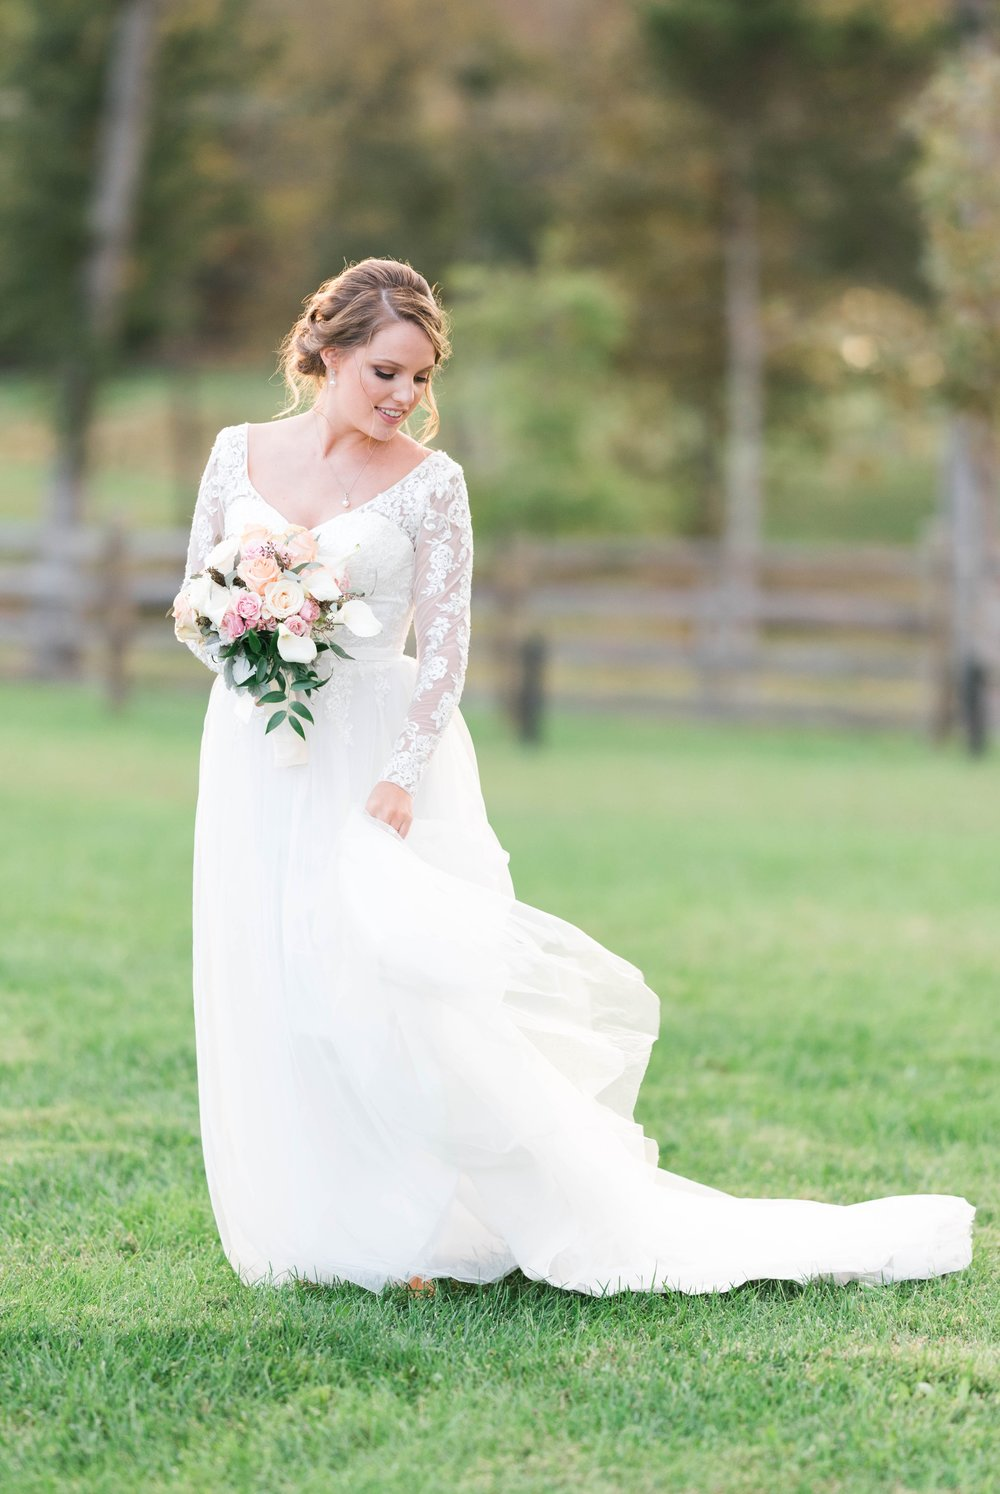 GrantElizabeth_wineryatbullrun_DCwedding_Virginiaweddingphotographer 34.jpg